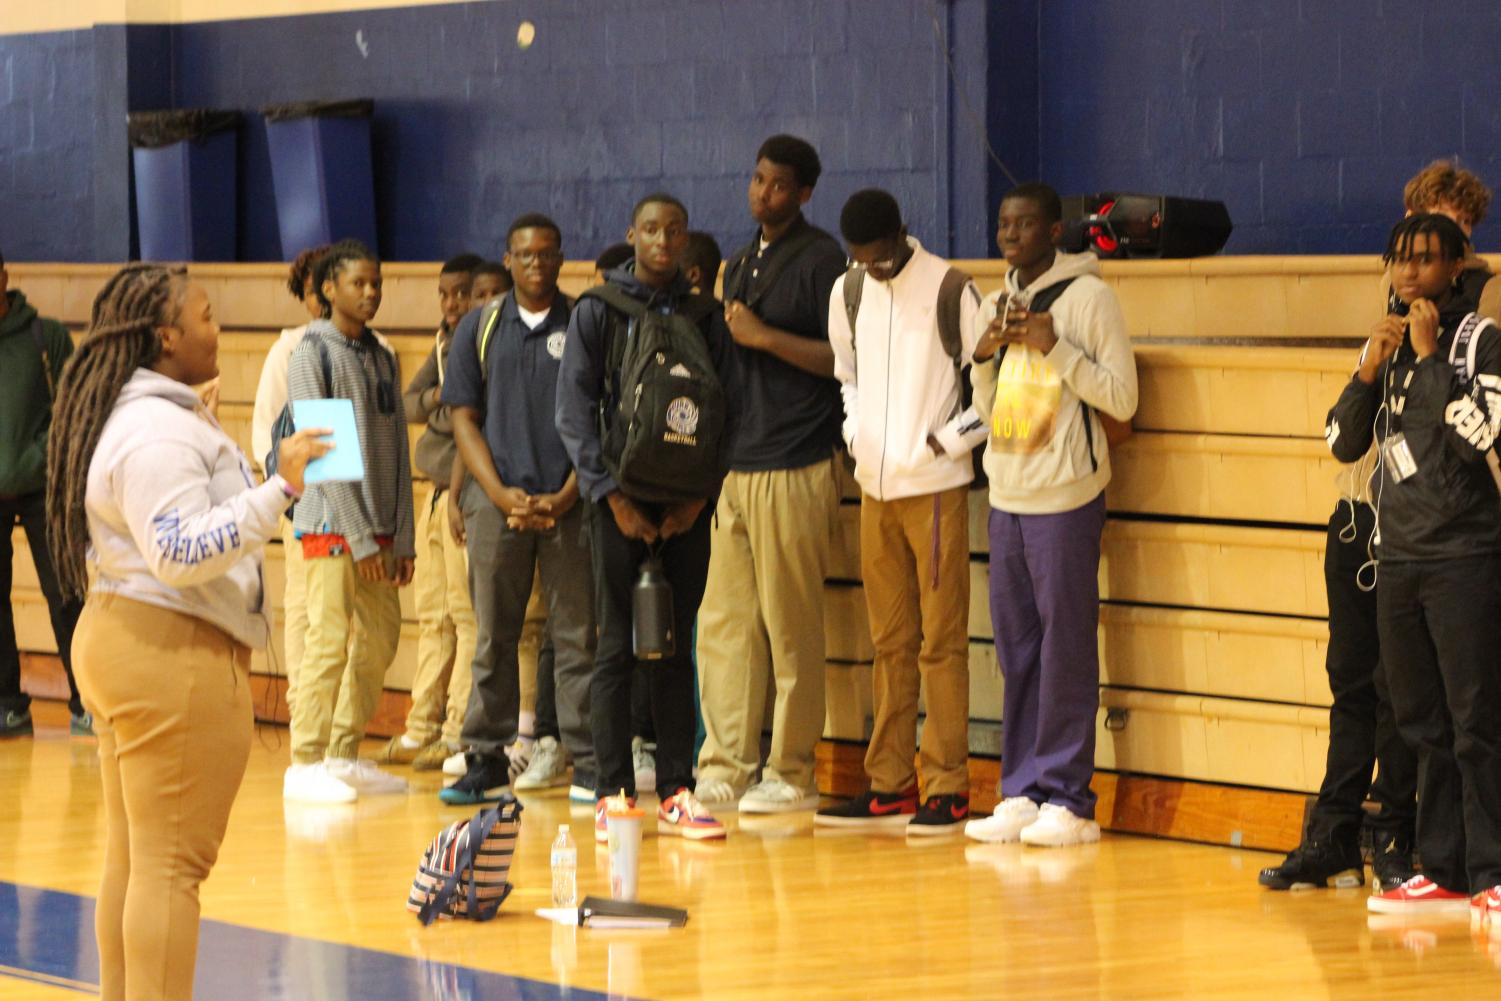 LISTEN UP: During lunch, students came together in the gym to get information about the upcoming basketball season from the head manager, Flo Francois, Aug. 21.